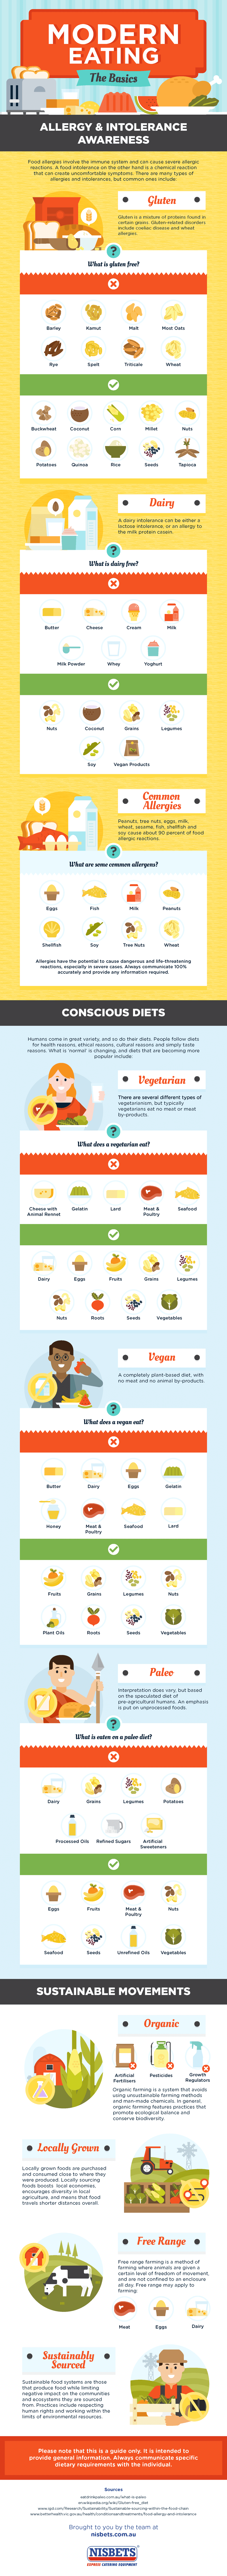 Human Eating Patterns Revisited - Infographic